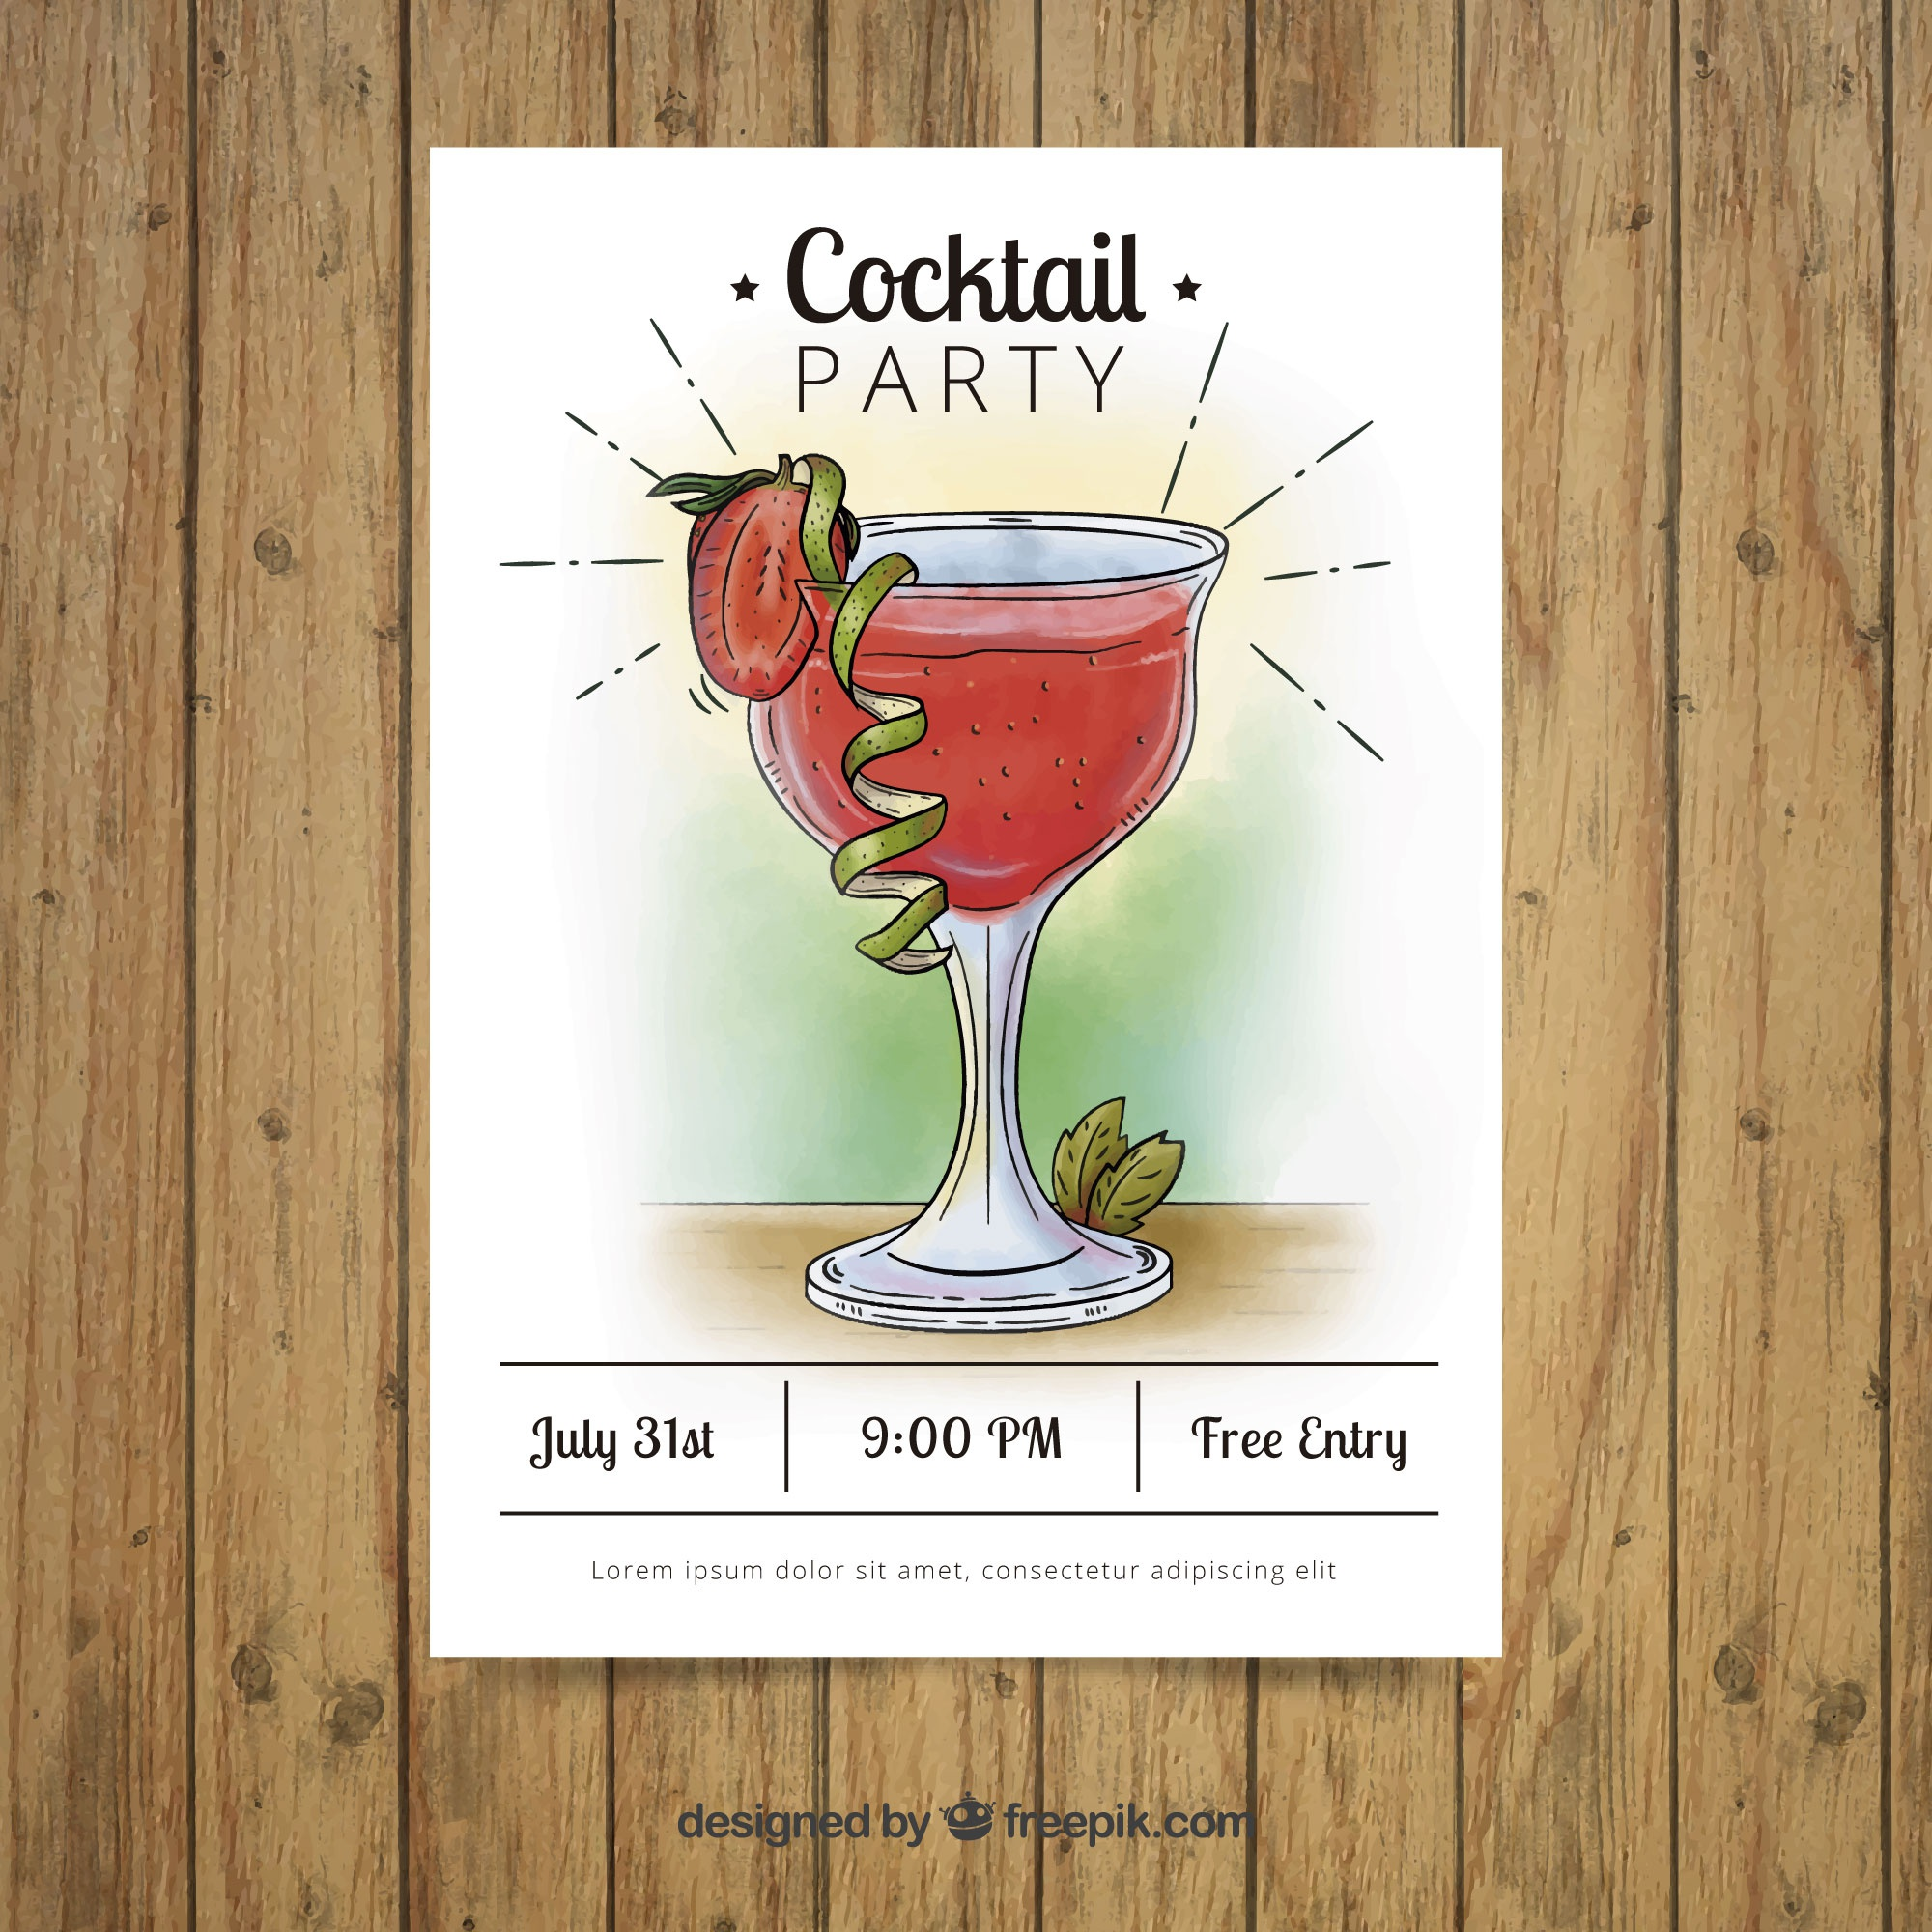 Hand drawn cocktail party brochure